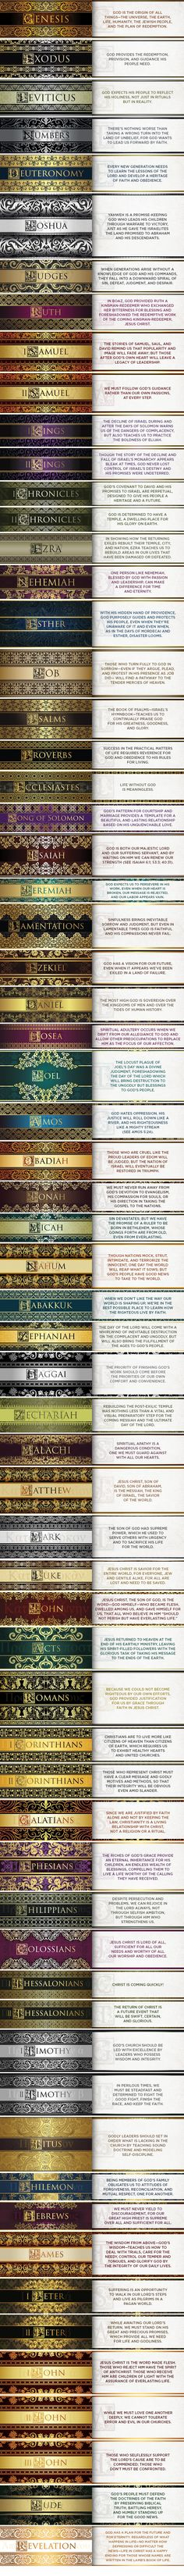 Take the fastest journey through the Bible you have ever experienced! Understanding the 66 Books of the Bible will orient you with each of God's special books—Genesis through Revelation—whether you're a new reader or a veteran student. This beautiful, full-color hardback volume offers fresh insights into familiar parts of the Bible, and an exciting grasp on hard-to-understand passages. https://www.davidjeremiah.org/site/monthly/0414_UBBHBK.aspx?tid=pinterest